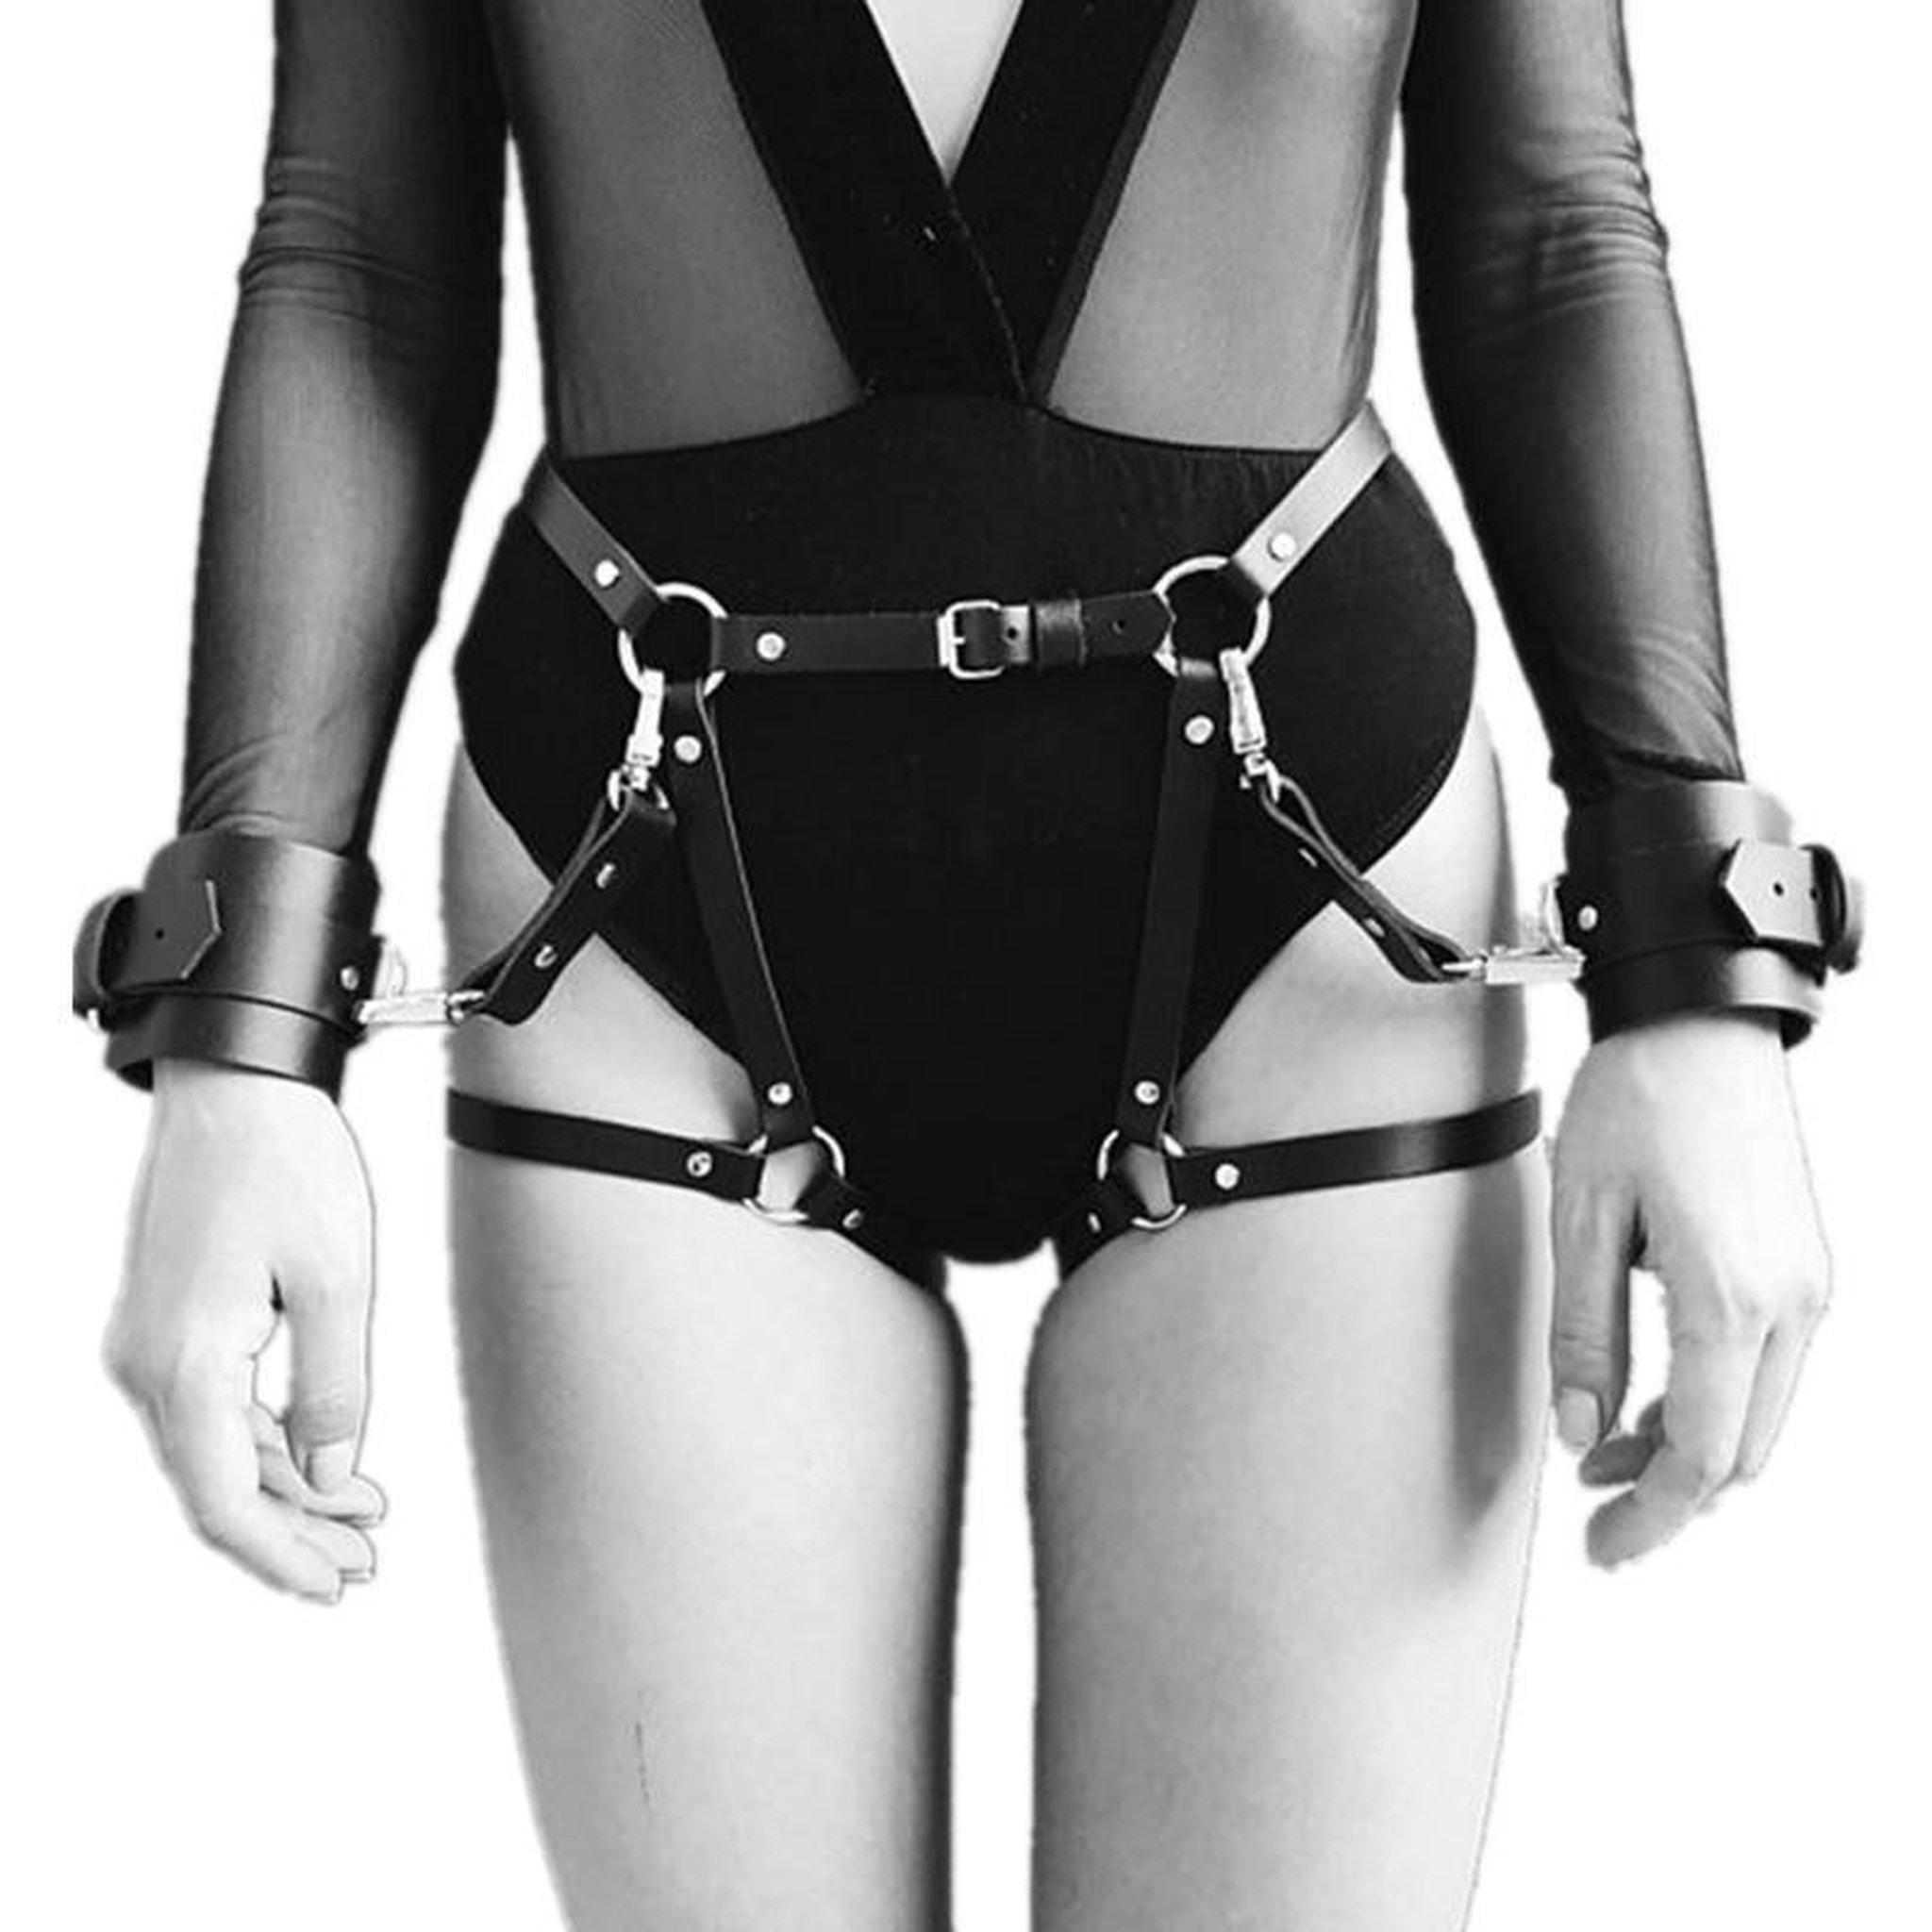 Adjustable Leather Garter Belt with Wrist Cuffs-Good Girl xox-buy-bdsm-bondage-gear-tools-toys-online-good-girl-xox